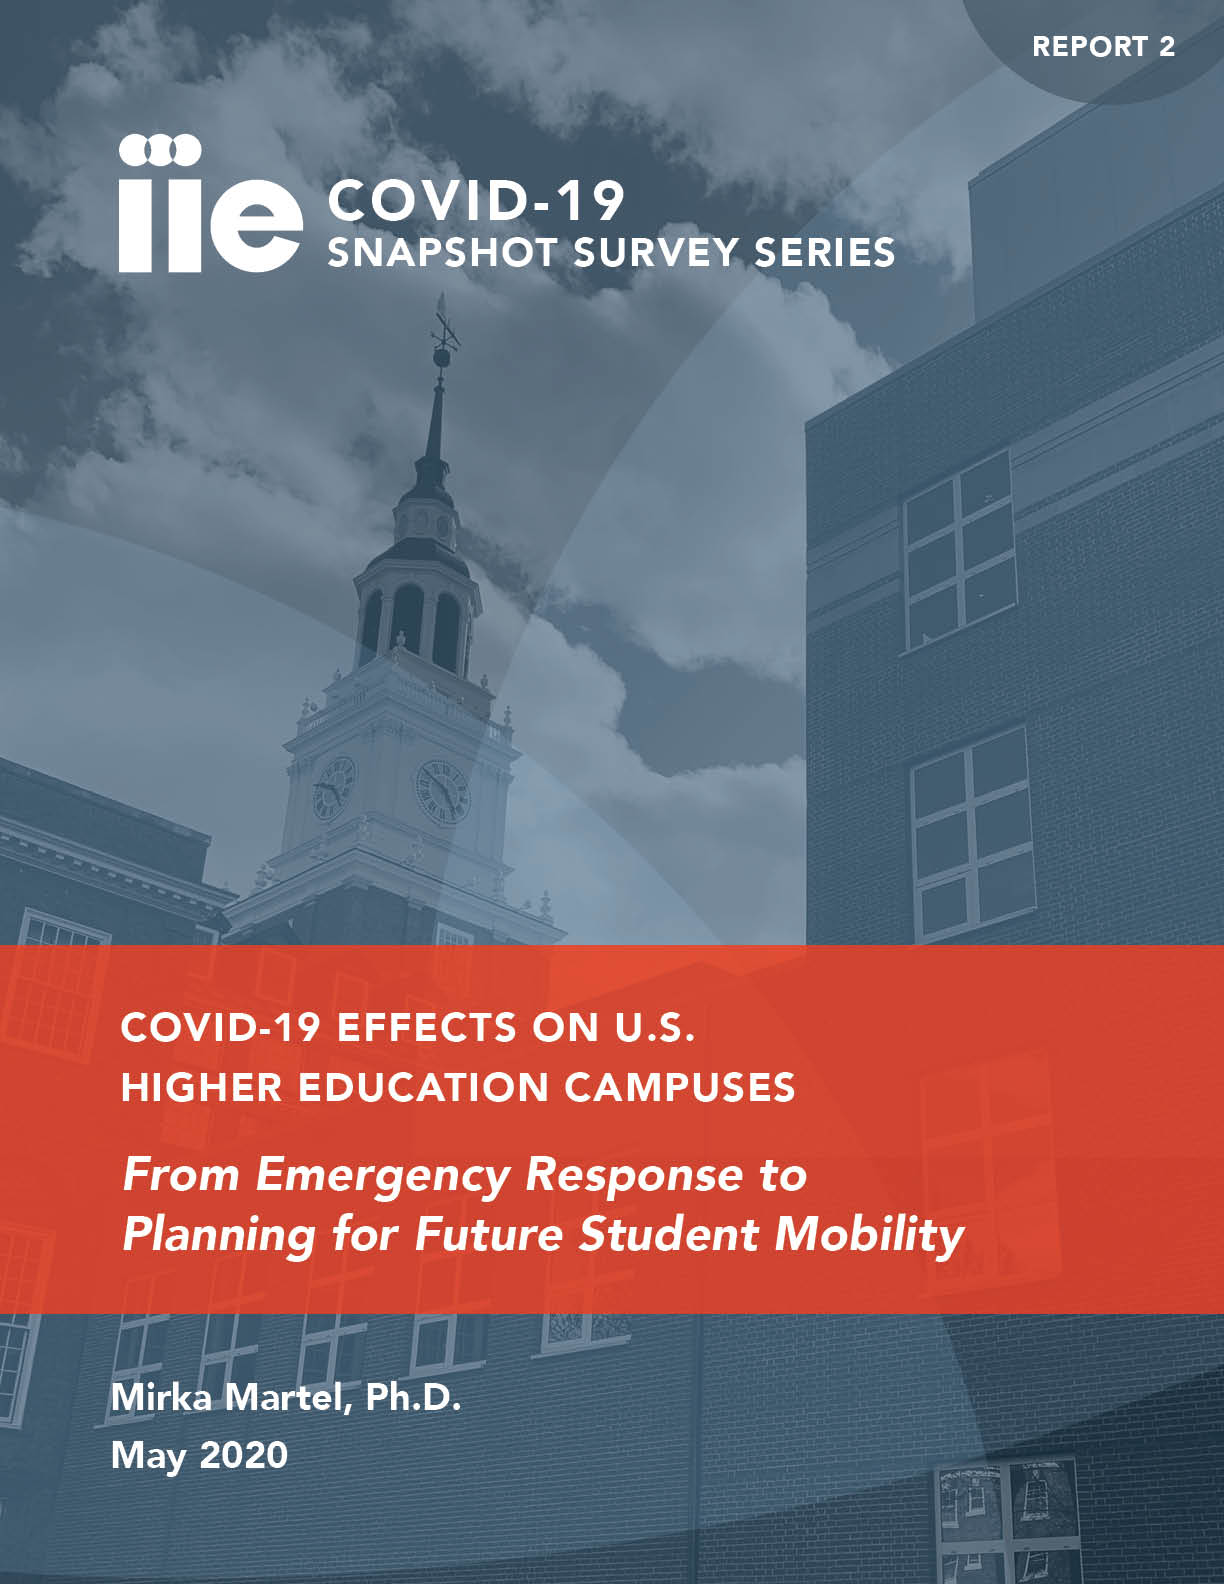 Cover of COVID-19 Snapshot Survey Series Report 2